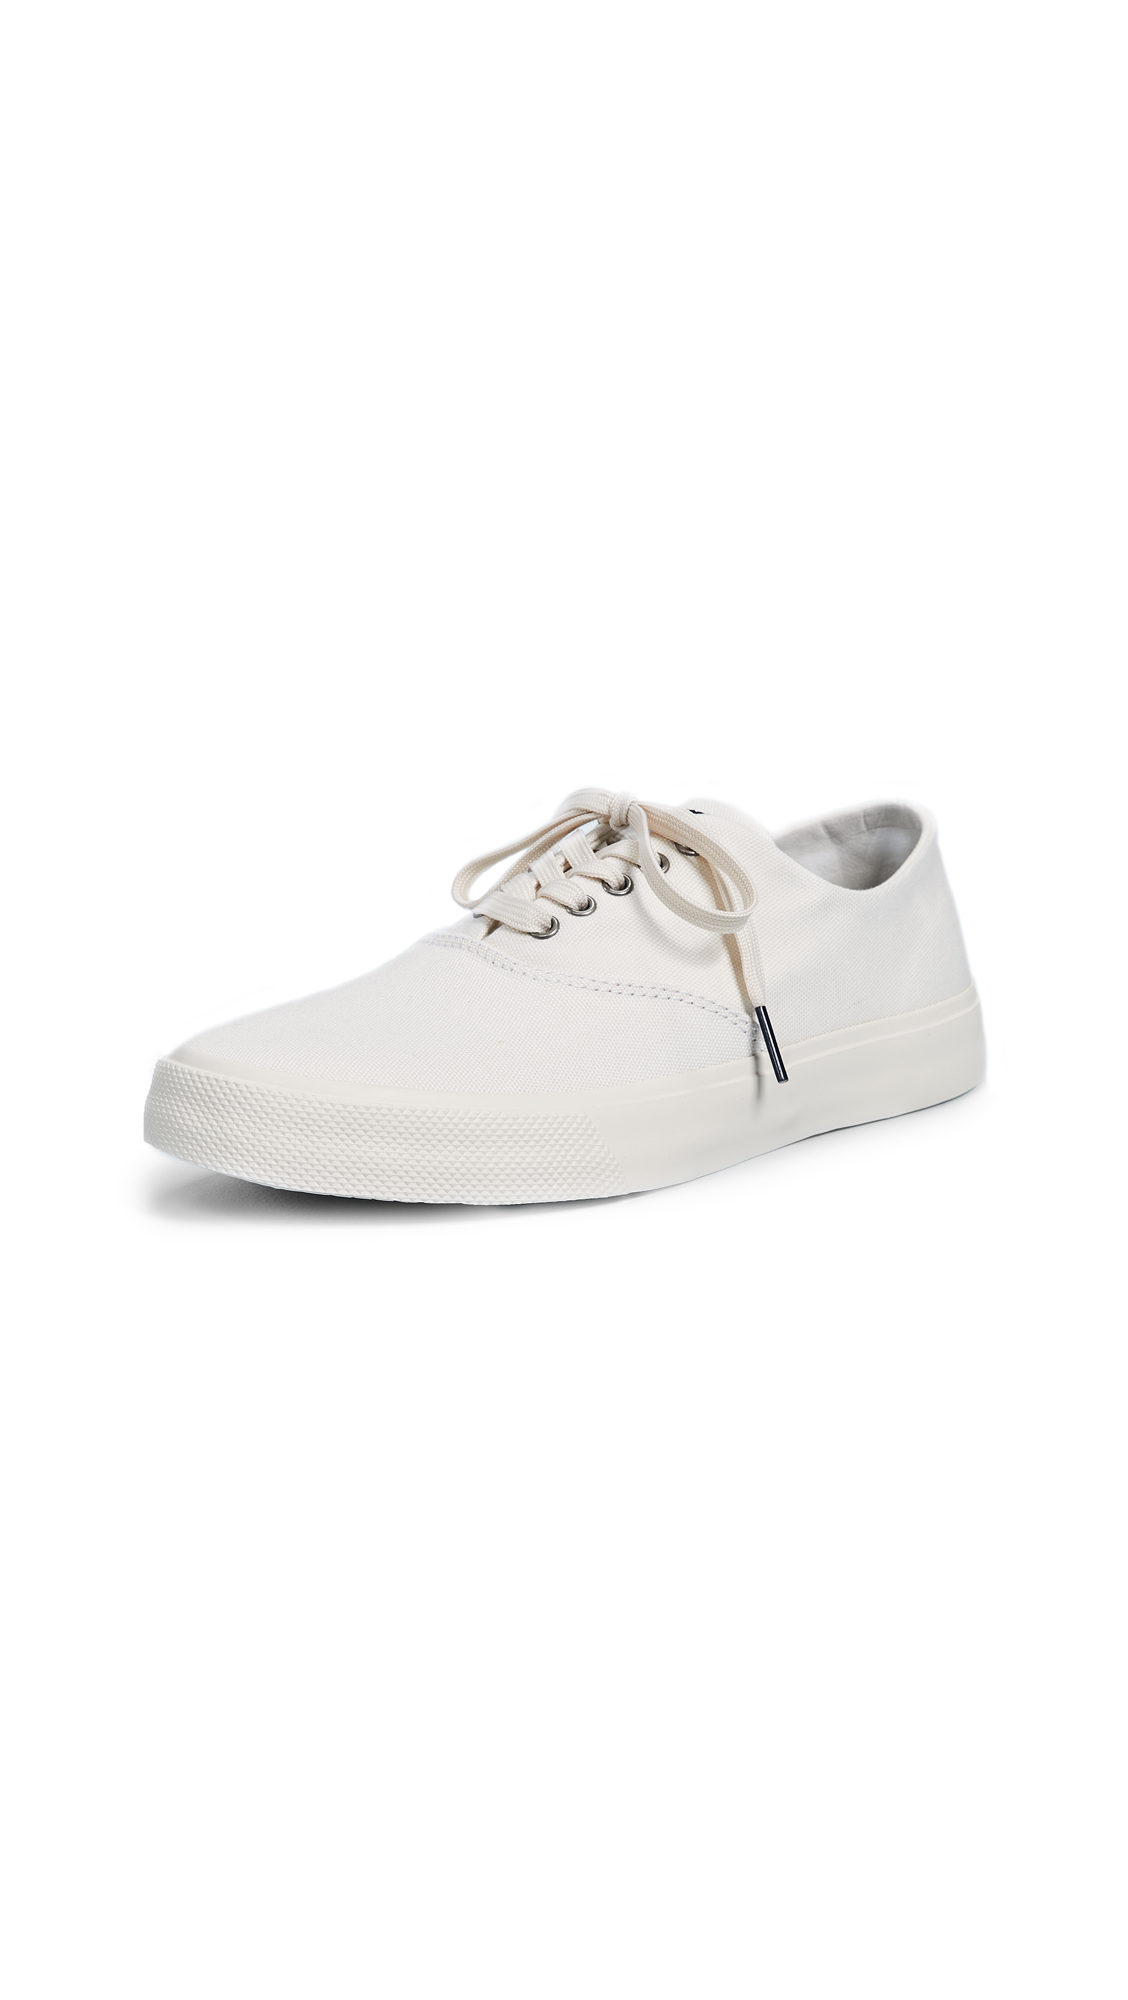 Sperry Captains CVO Sneakers - White